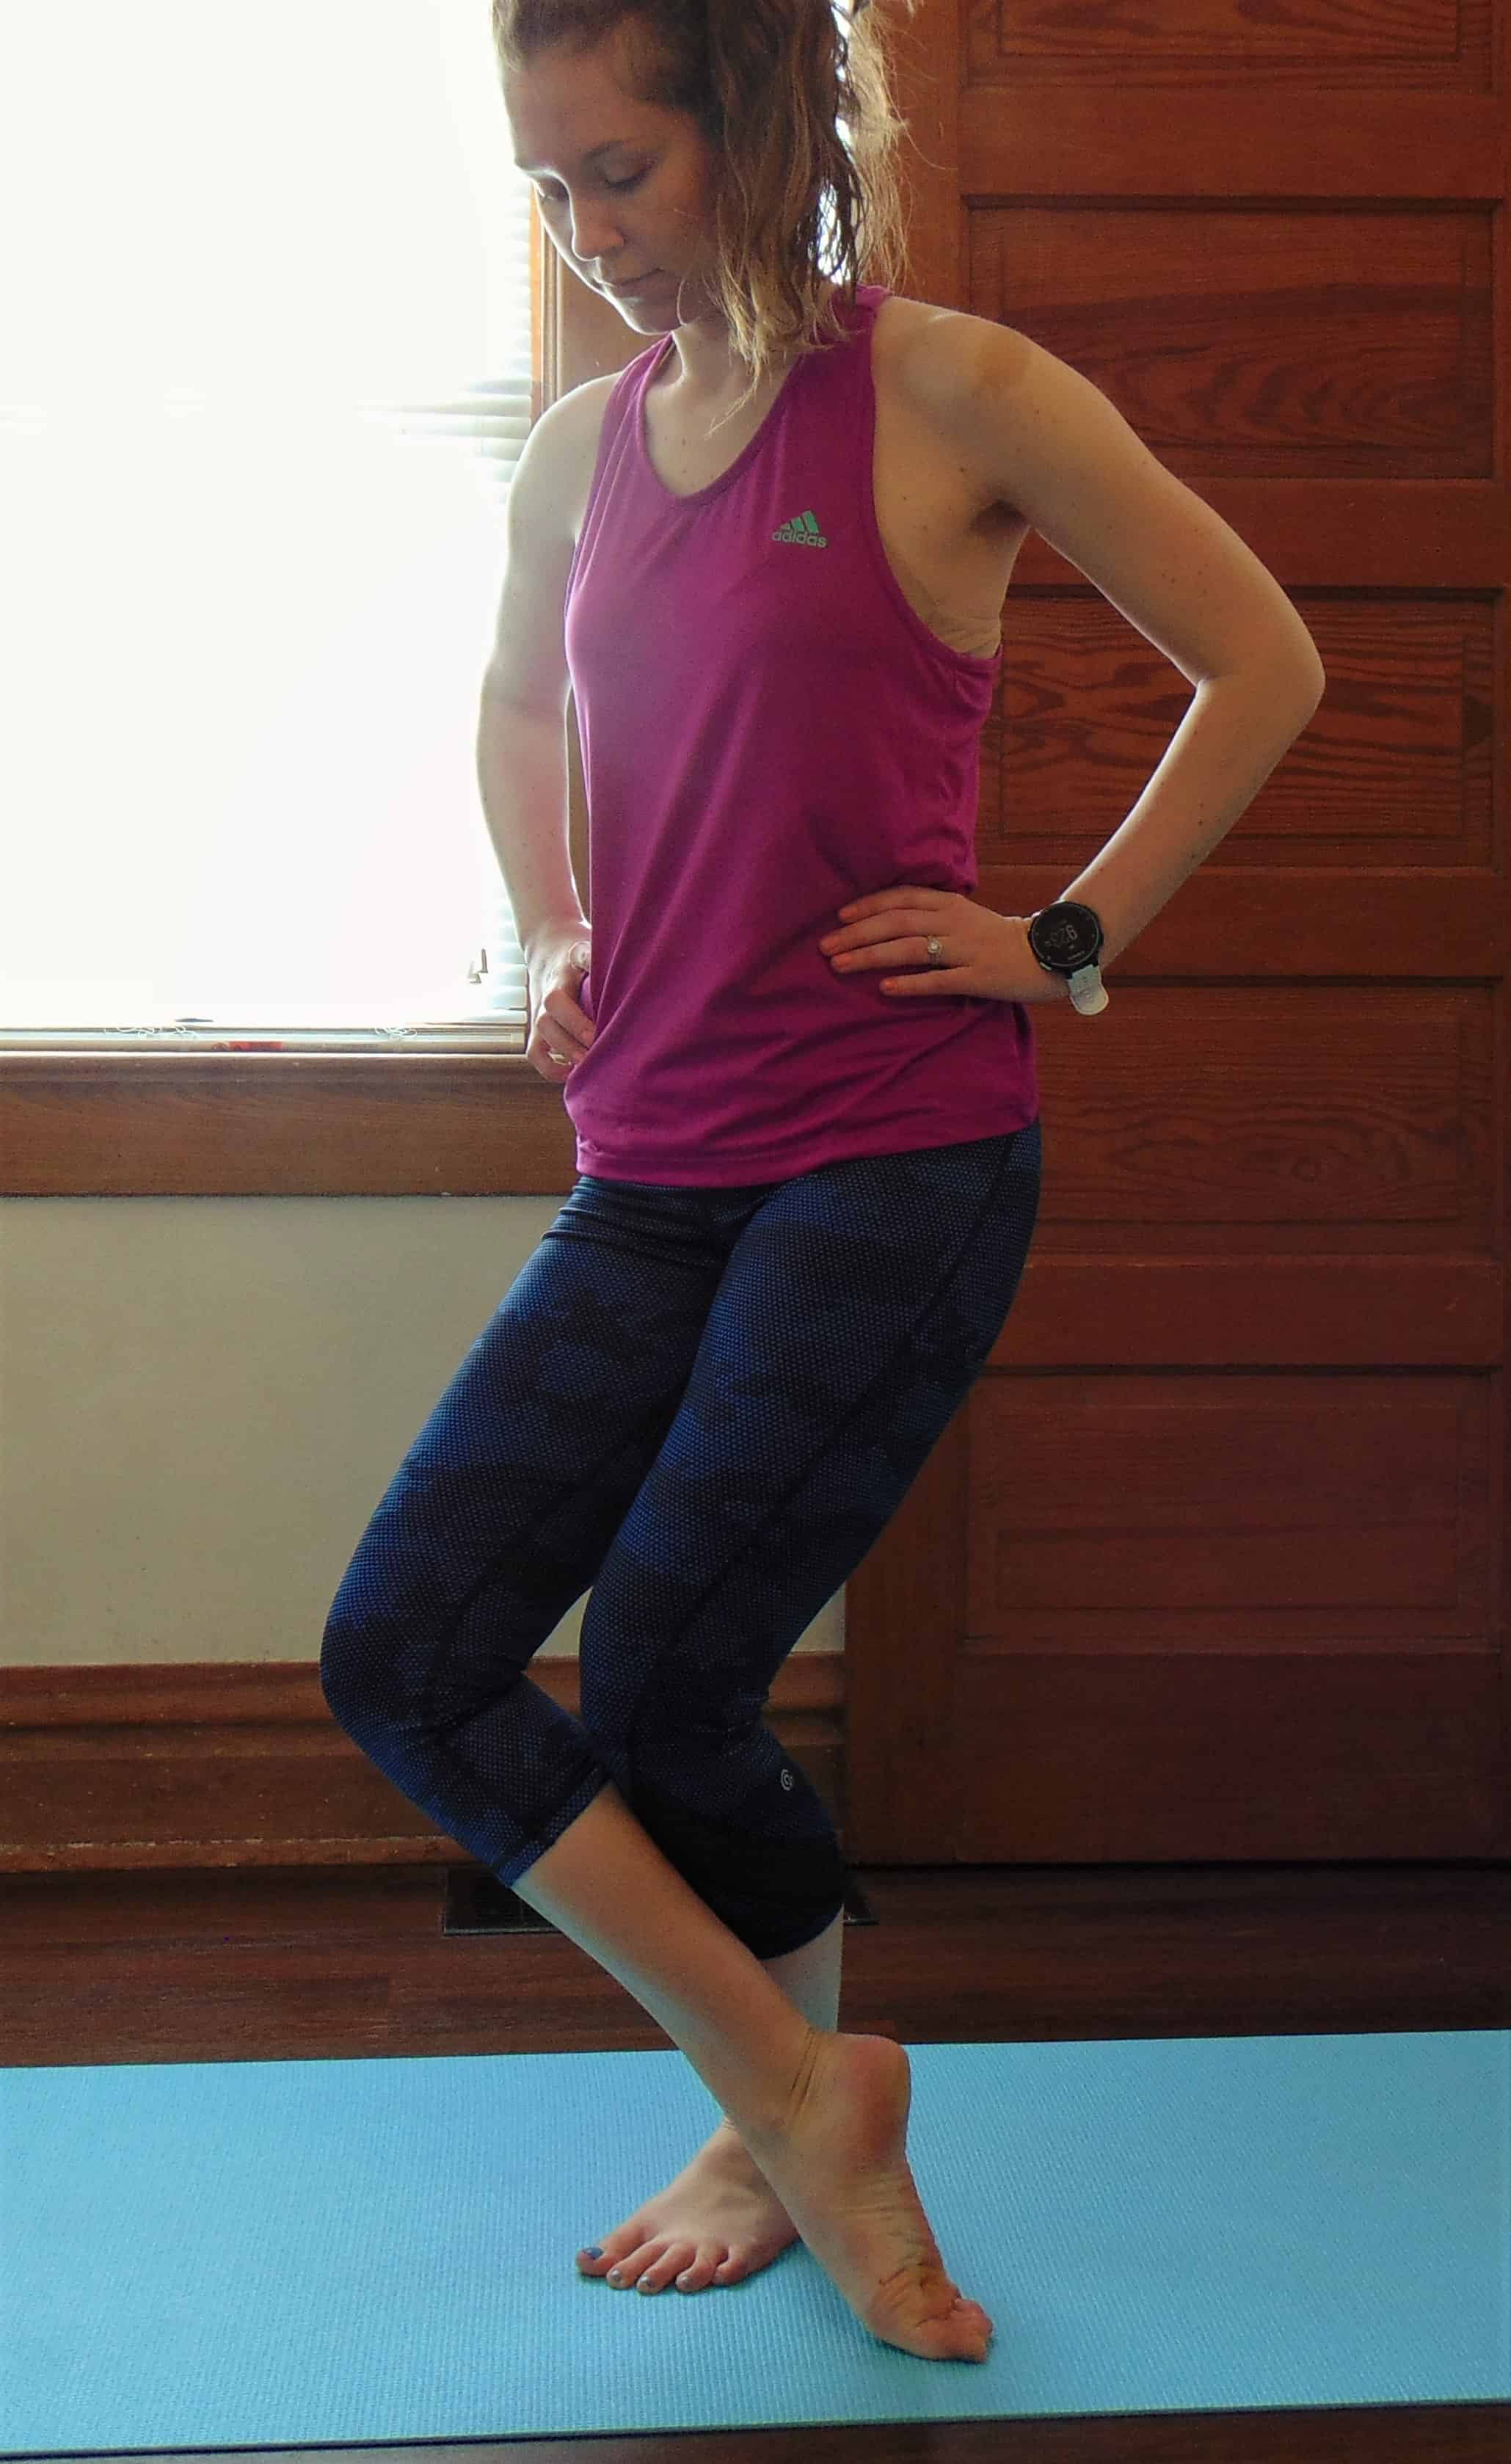 Complete these 10 best lower body stretches for runners after a running workout to stay injury free. These leg stretches are especially important for runners with tight hips or knee pain after a workout. This simple stretching routine targets all the major areas in our lower bodies (hips, calves, thighs and feet) in less than 10 minutes. You will notice a difference immediately with these post run stretches.